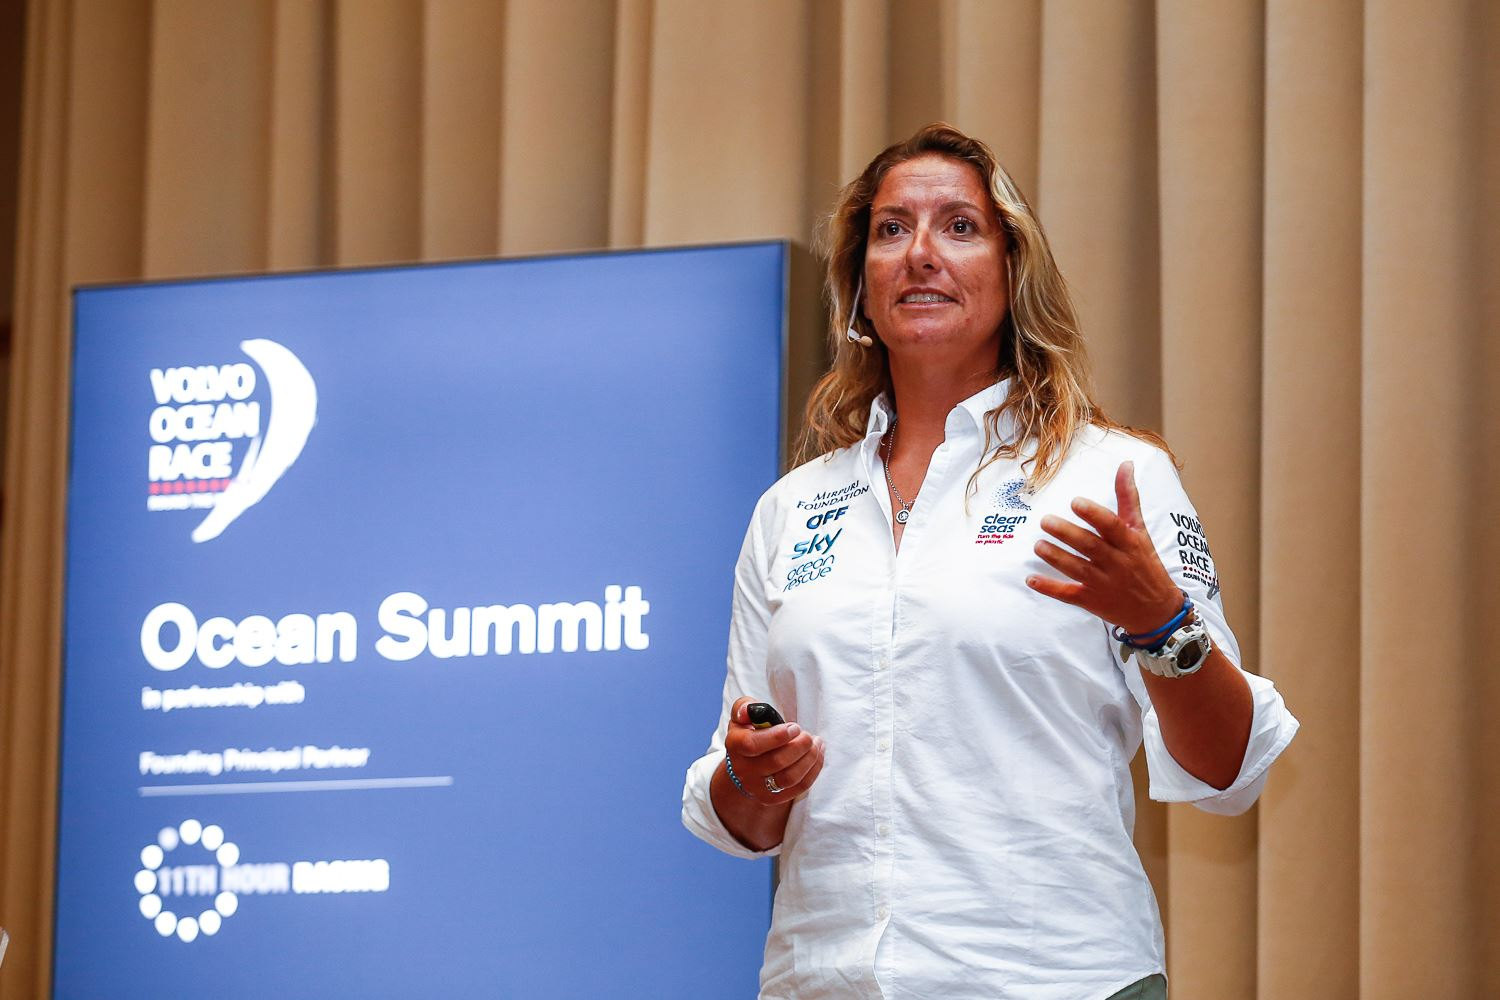 Dee Caffari speaking at the Volvo Ocean Race Cape Town Ocean Summit